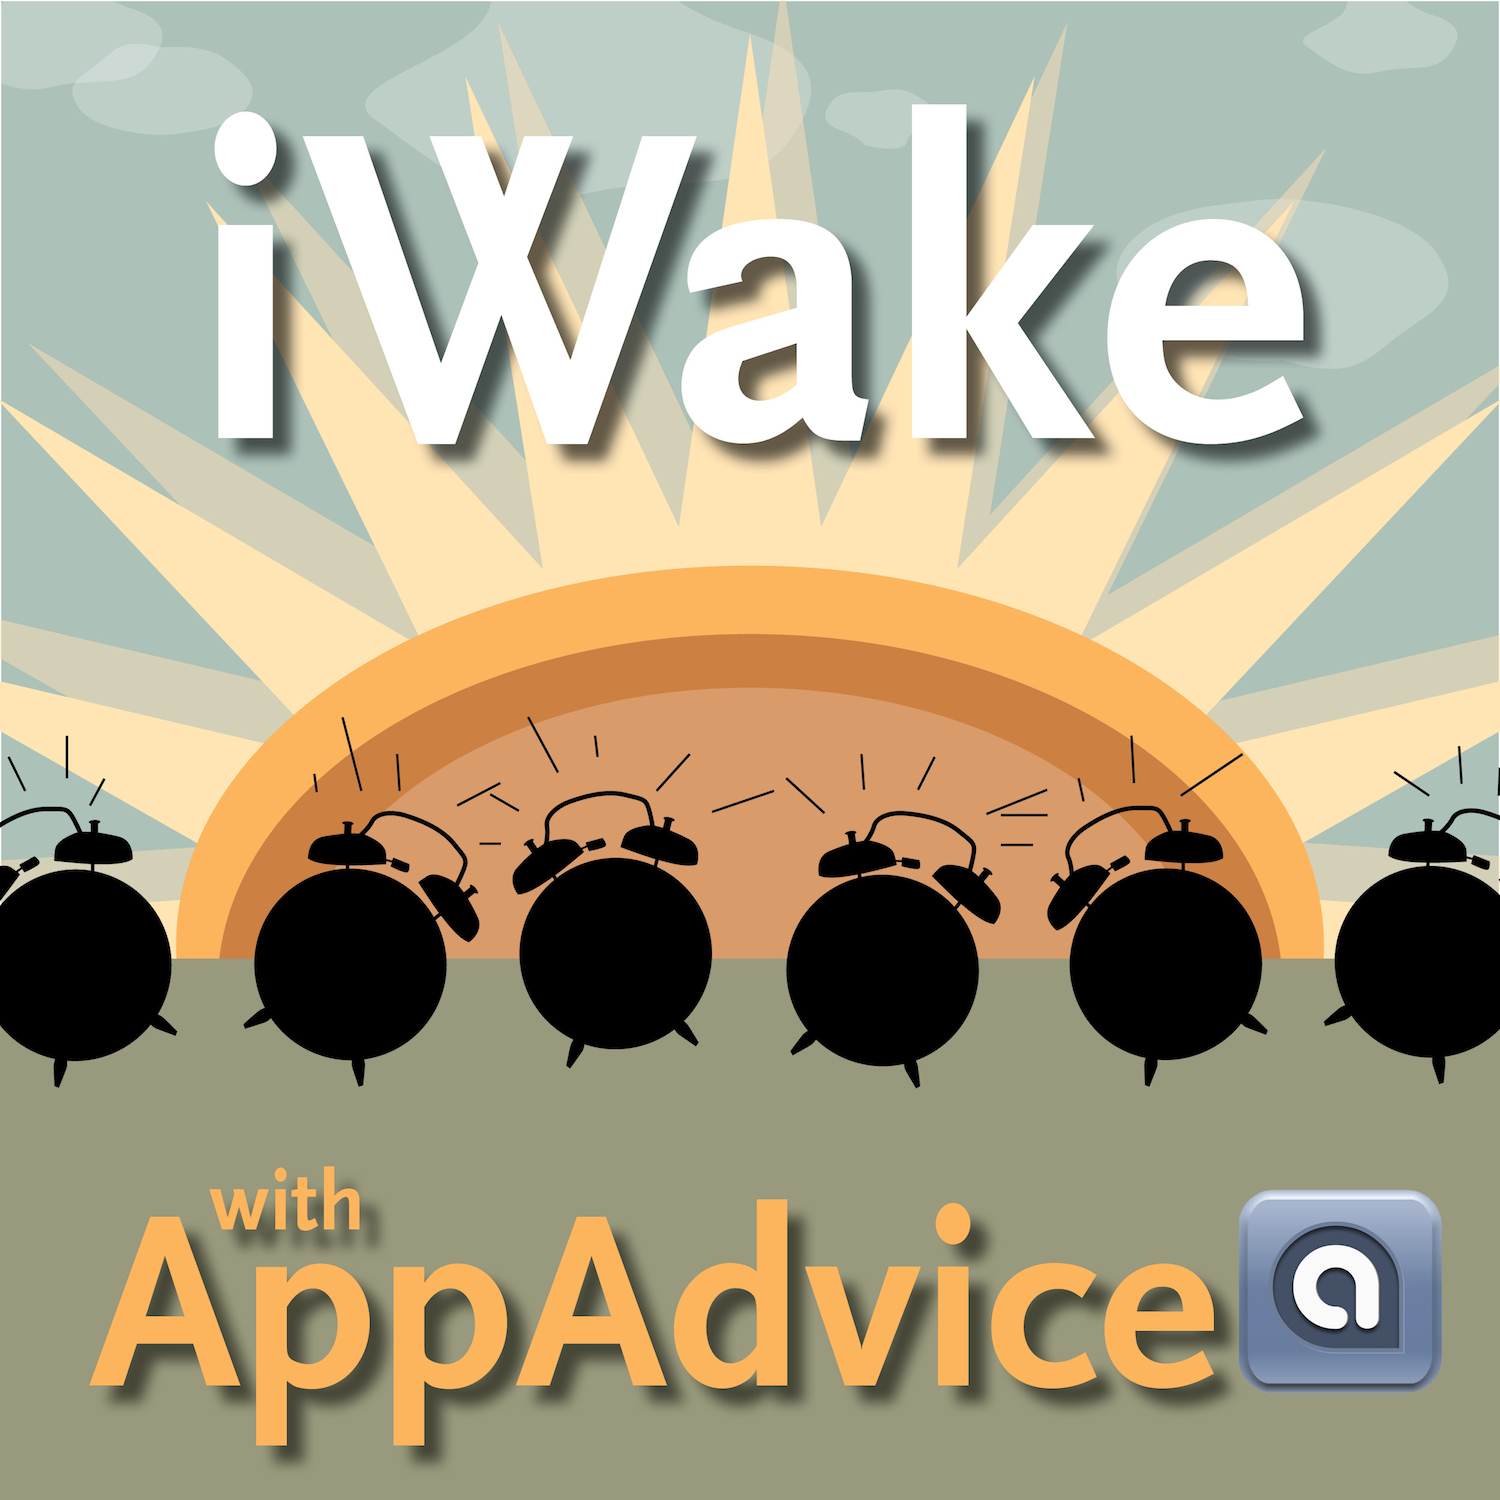 iWake With AppAdvice For Halloween Now Available